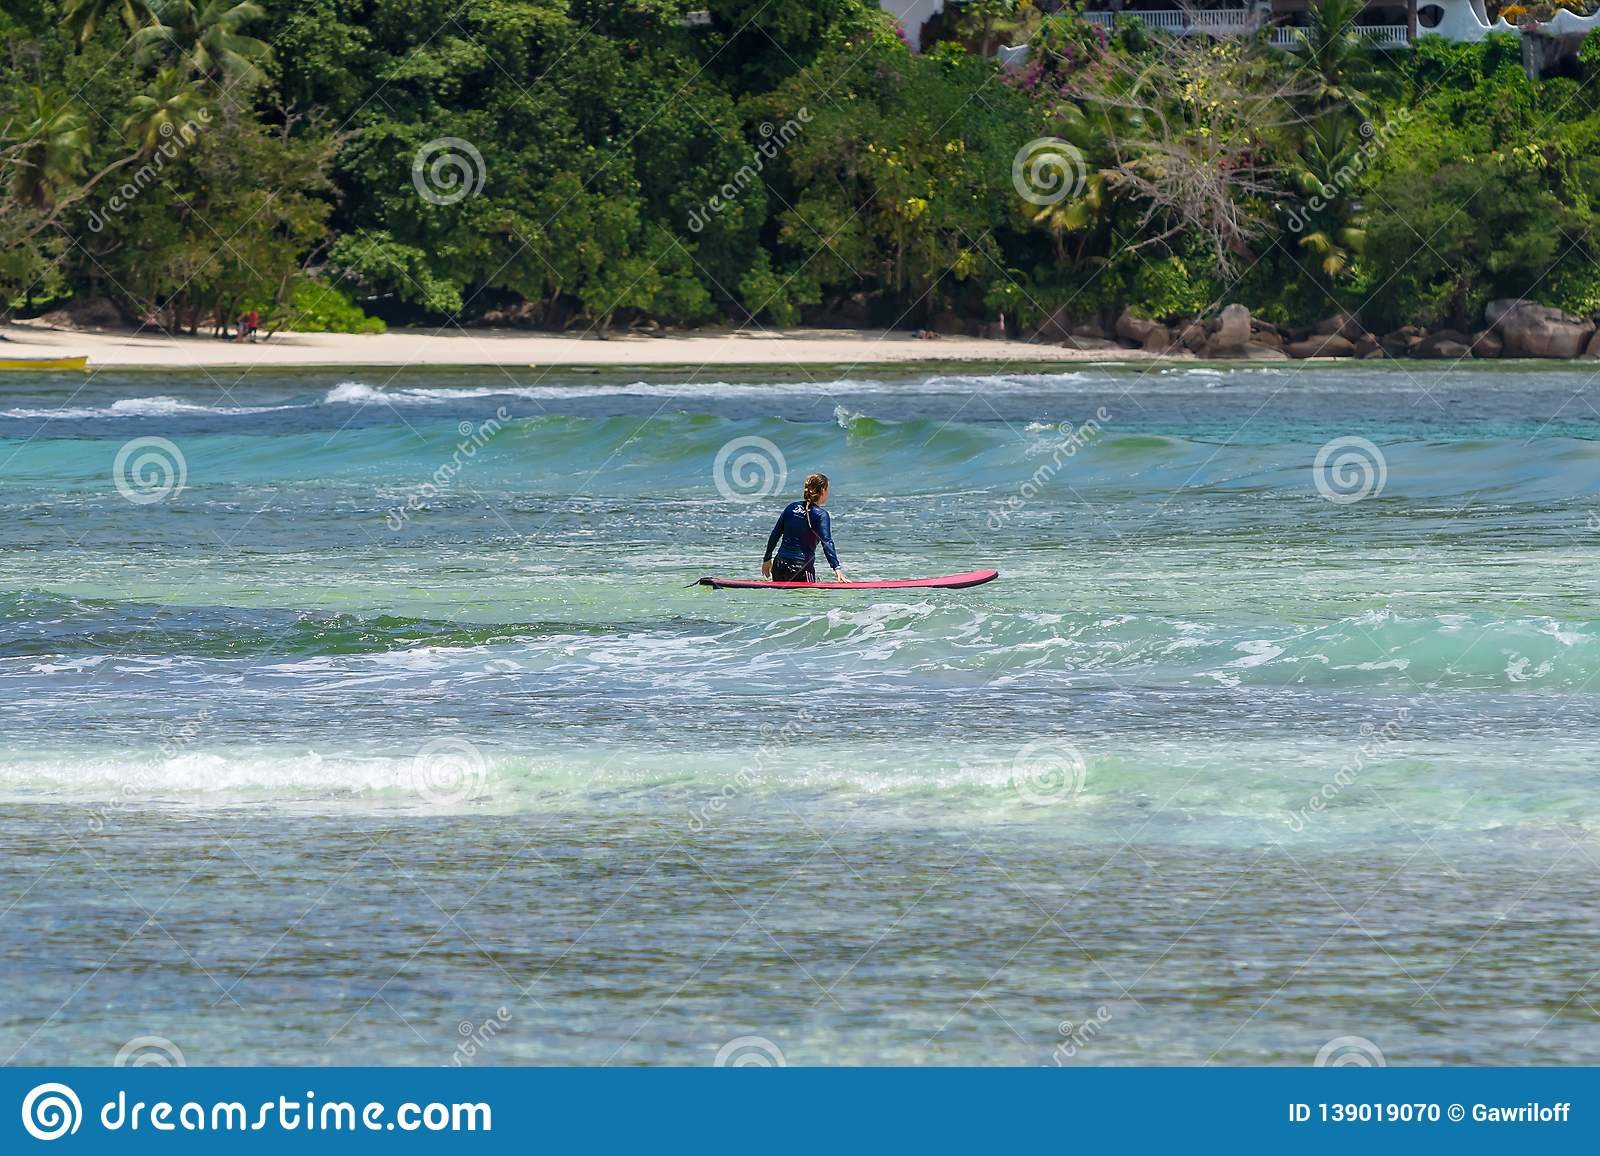 MAHE, SEYCHELLES - SEPTEMBER 25, 2018: Unidentified man surfing on a large wave on island Mahe on the coast of Indian ocean - is